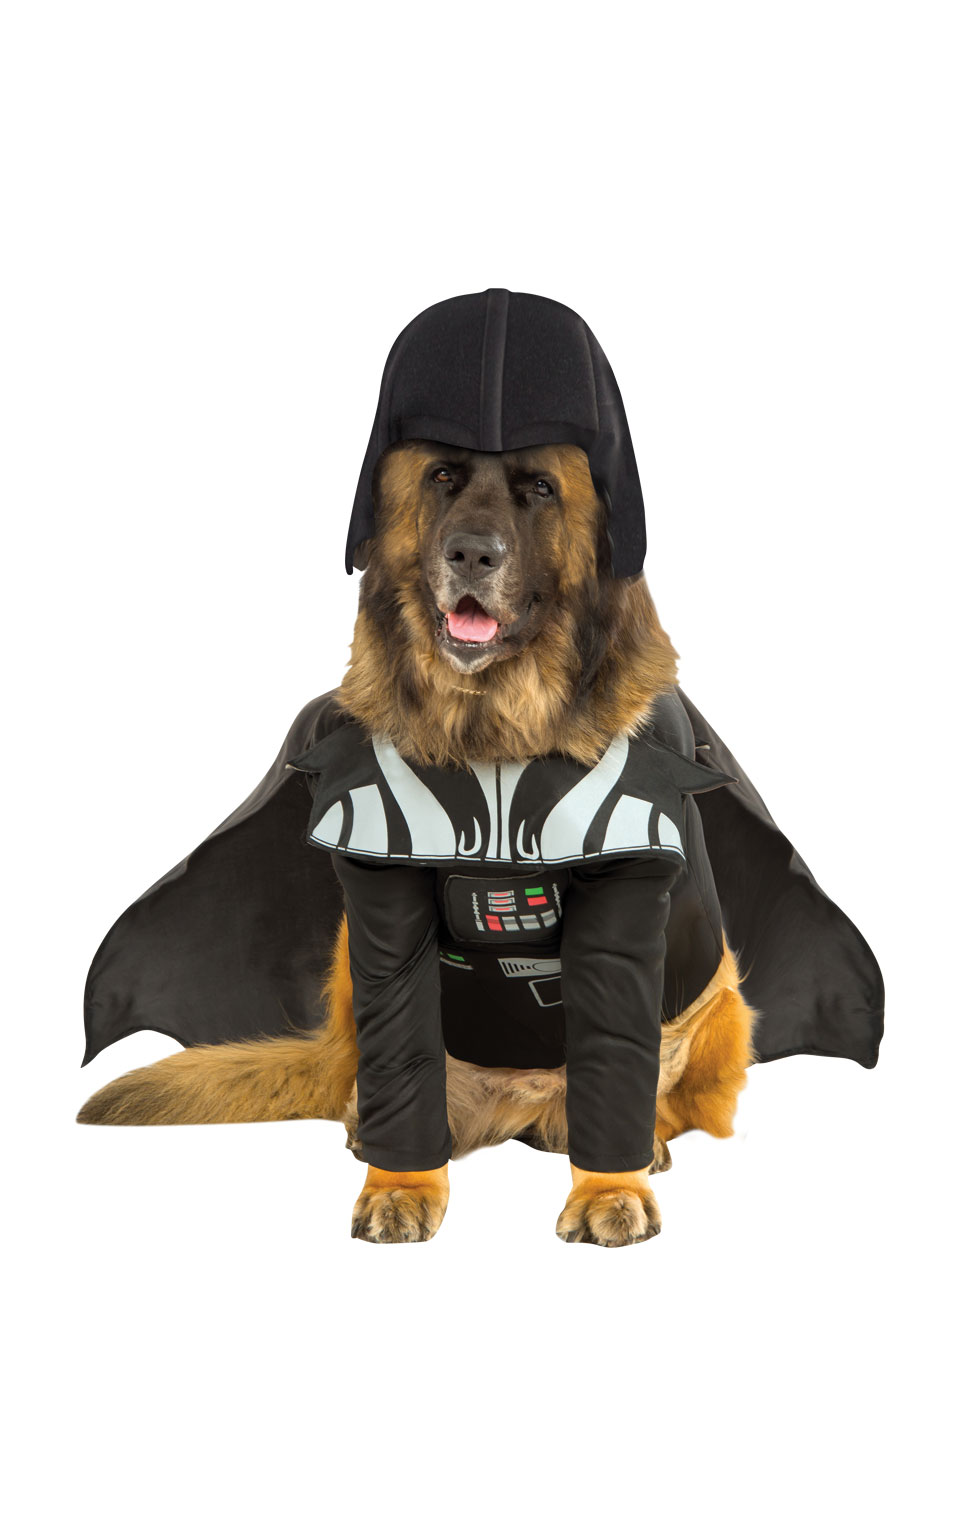 Darth Vader Fancy Dress Costume Outfit Dog Halloween Star Wars Pet Animal S-3XL